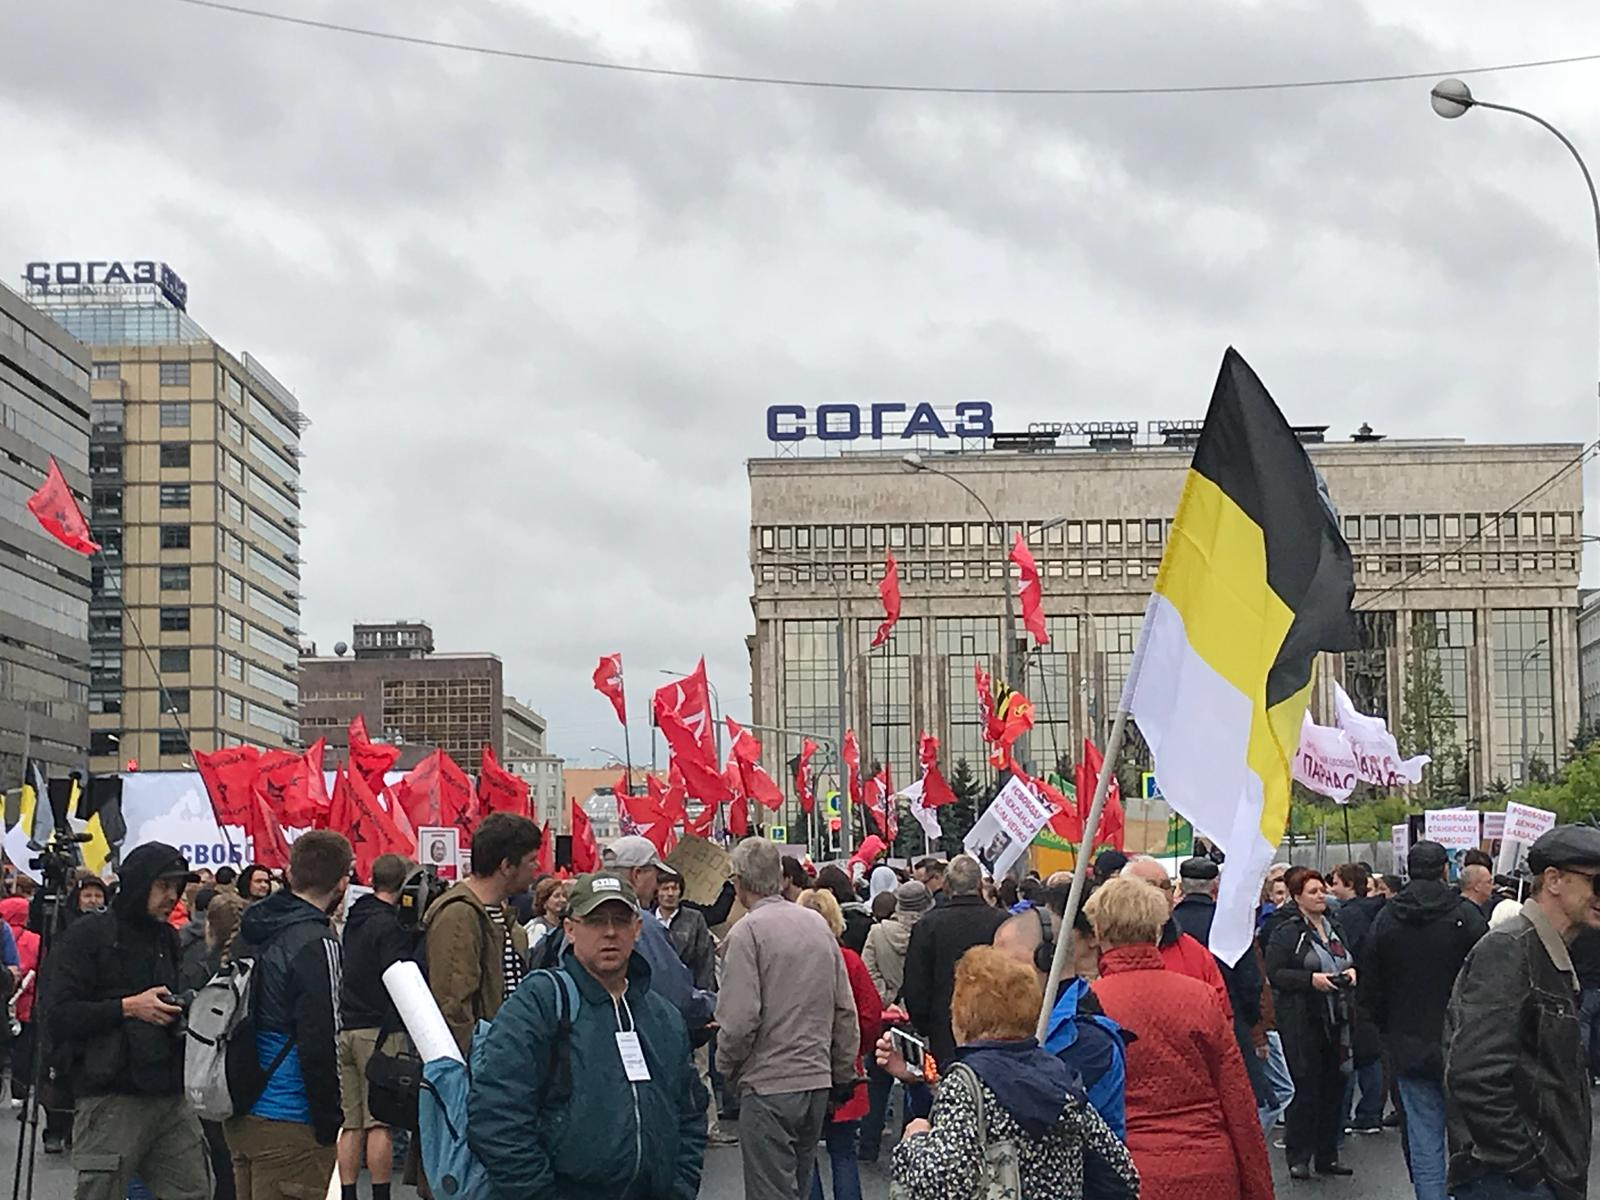 Protesters wave flags according to their political affiliation